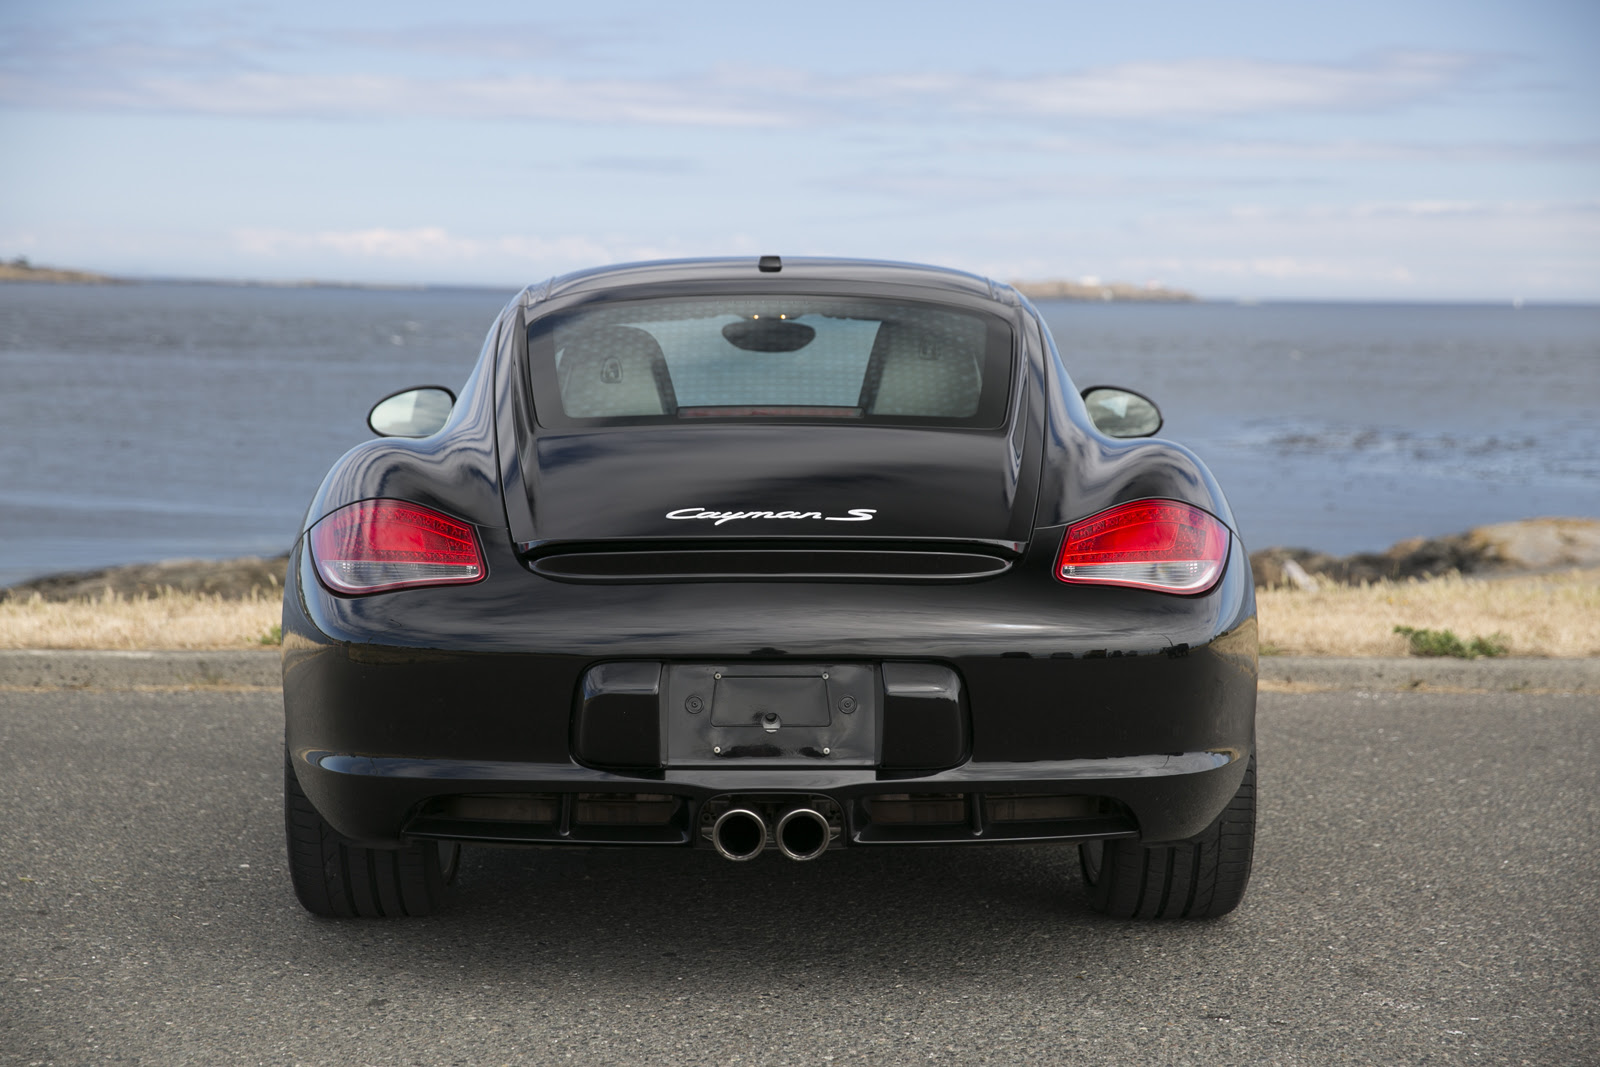 Porsche Cayman S Pdk Black On Black In Victoria Bc Silver